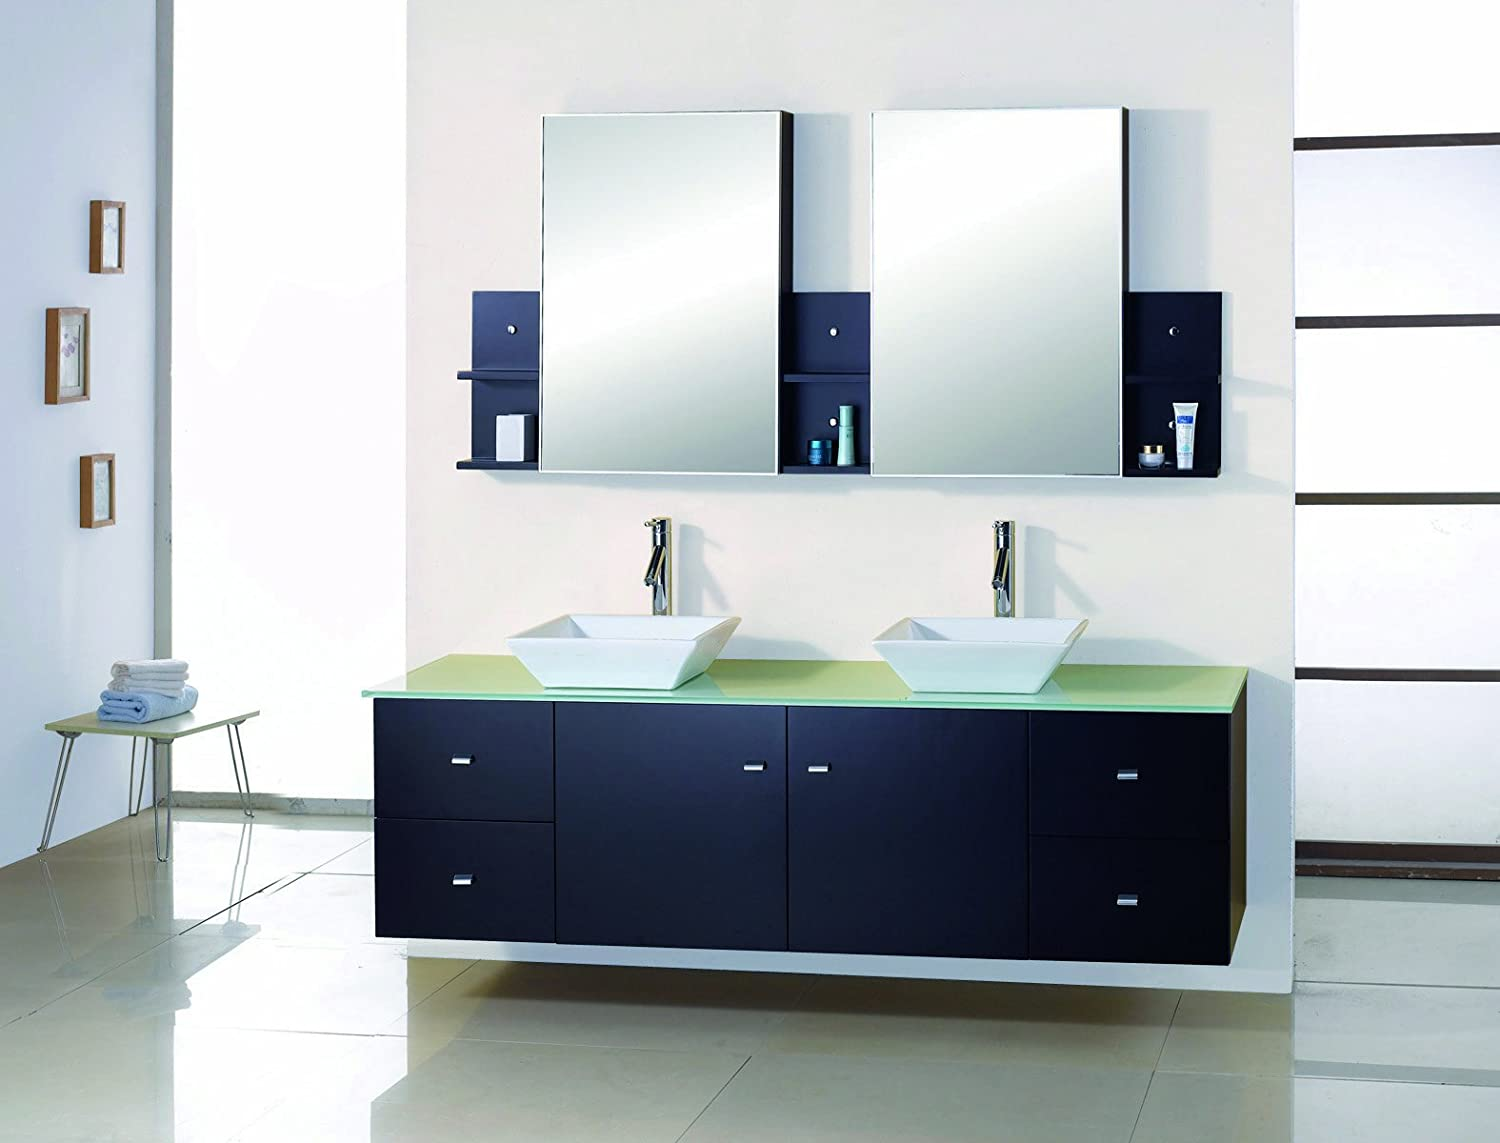 virtu usa md409ges clarissa 72inch wallmounted double sink bathroom vanity set with mirrored cabinets espresso finish modern vanity cabinet